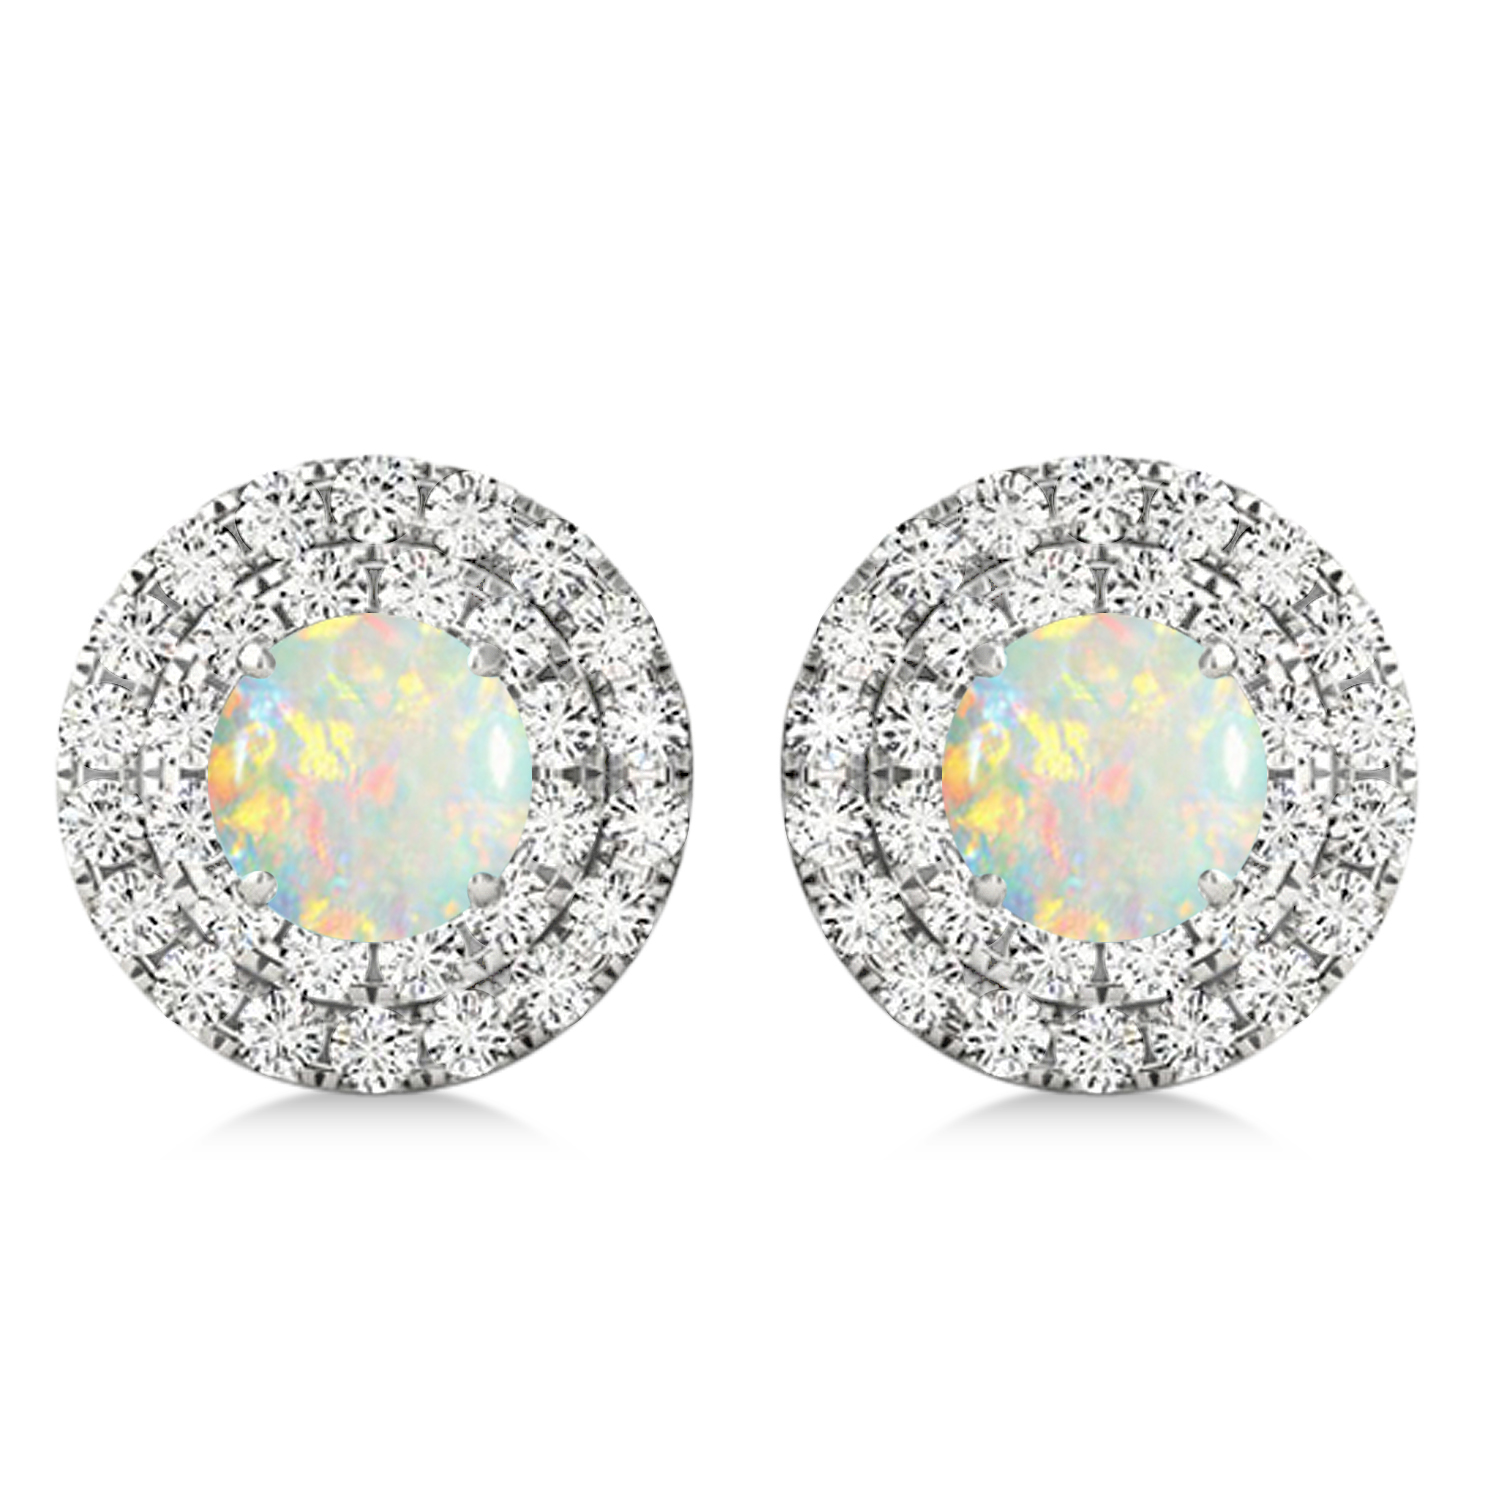 Round Double Halo Diamond & Opal Earrings 14k White Gold 1.13ct